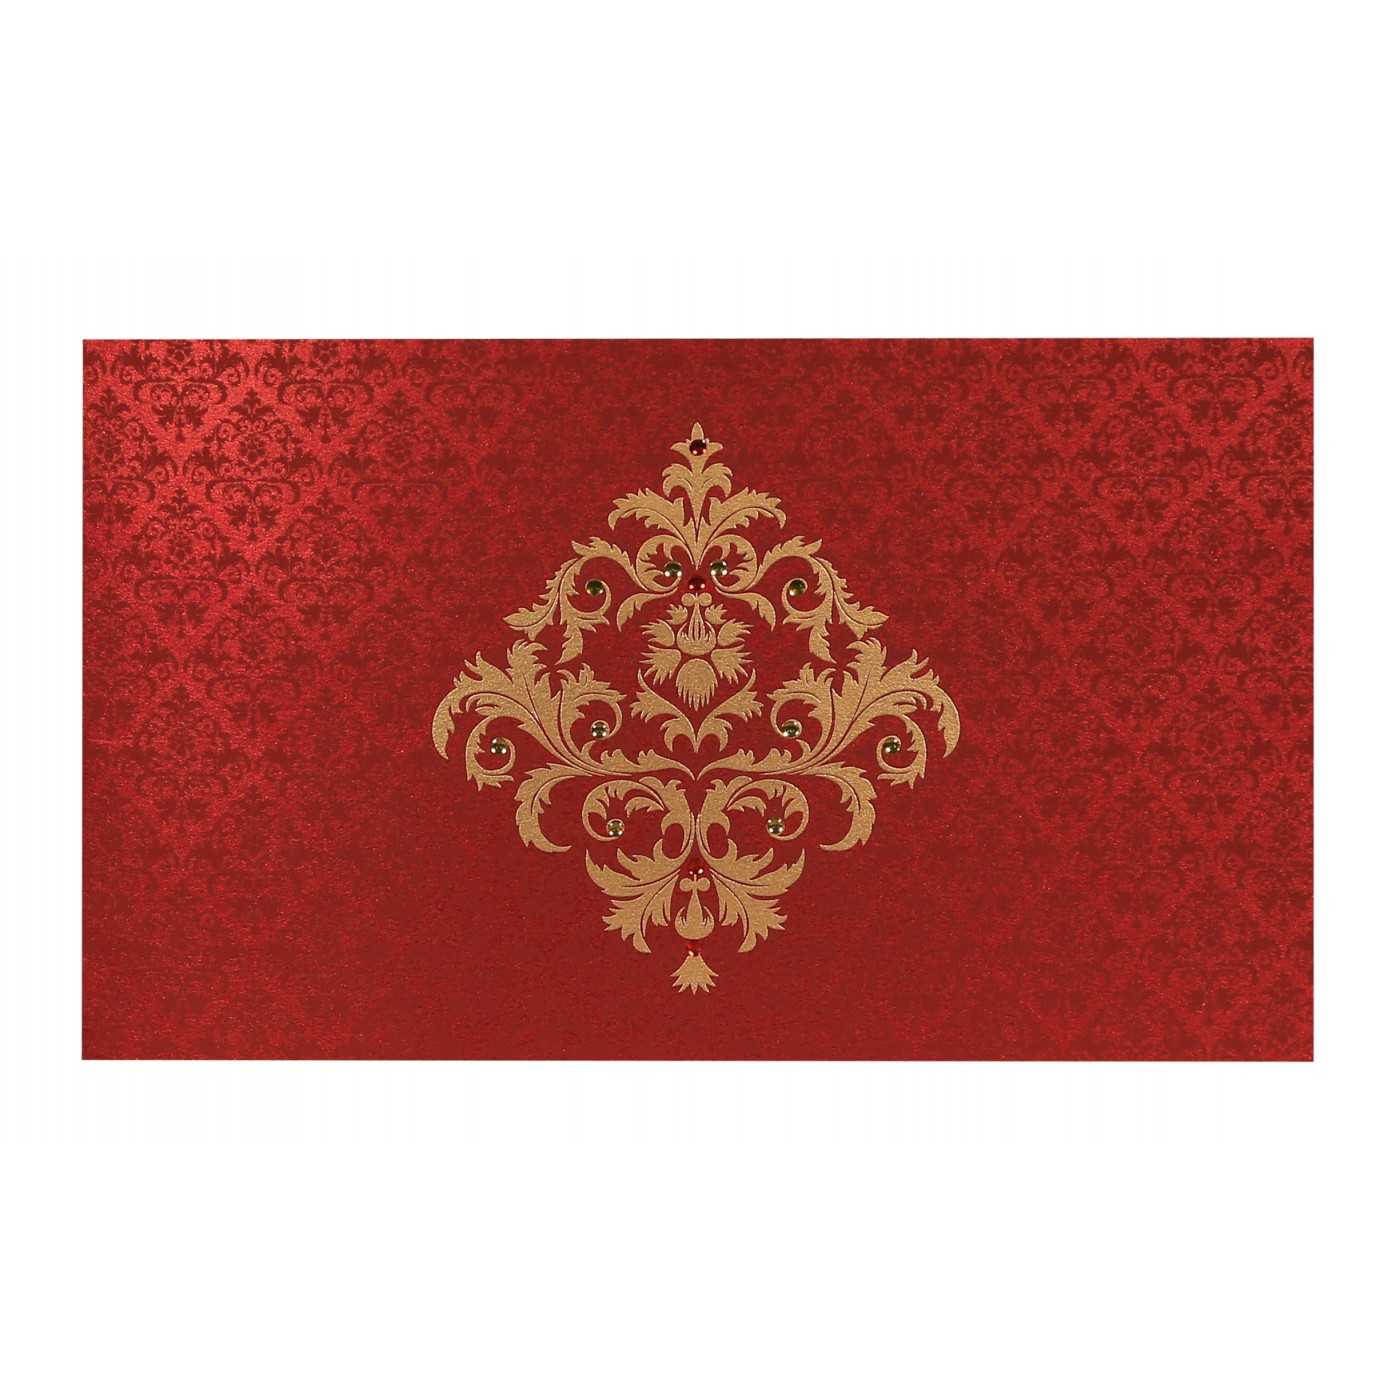 MODERATE RED SHIMMERY DAMASK THEMED - SCREEN PRINTED WEDDING CARD ...